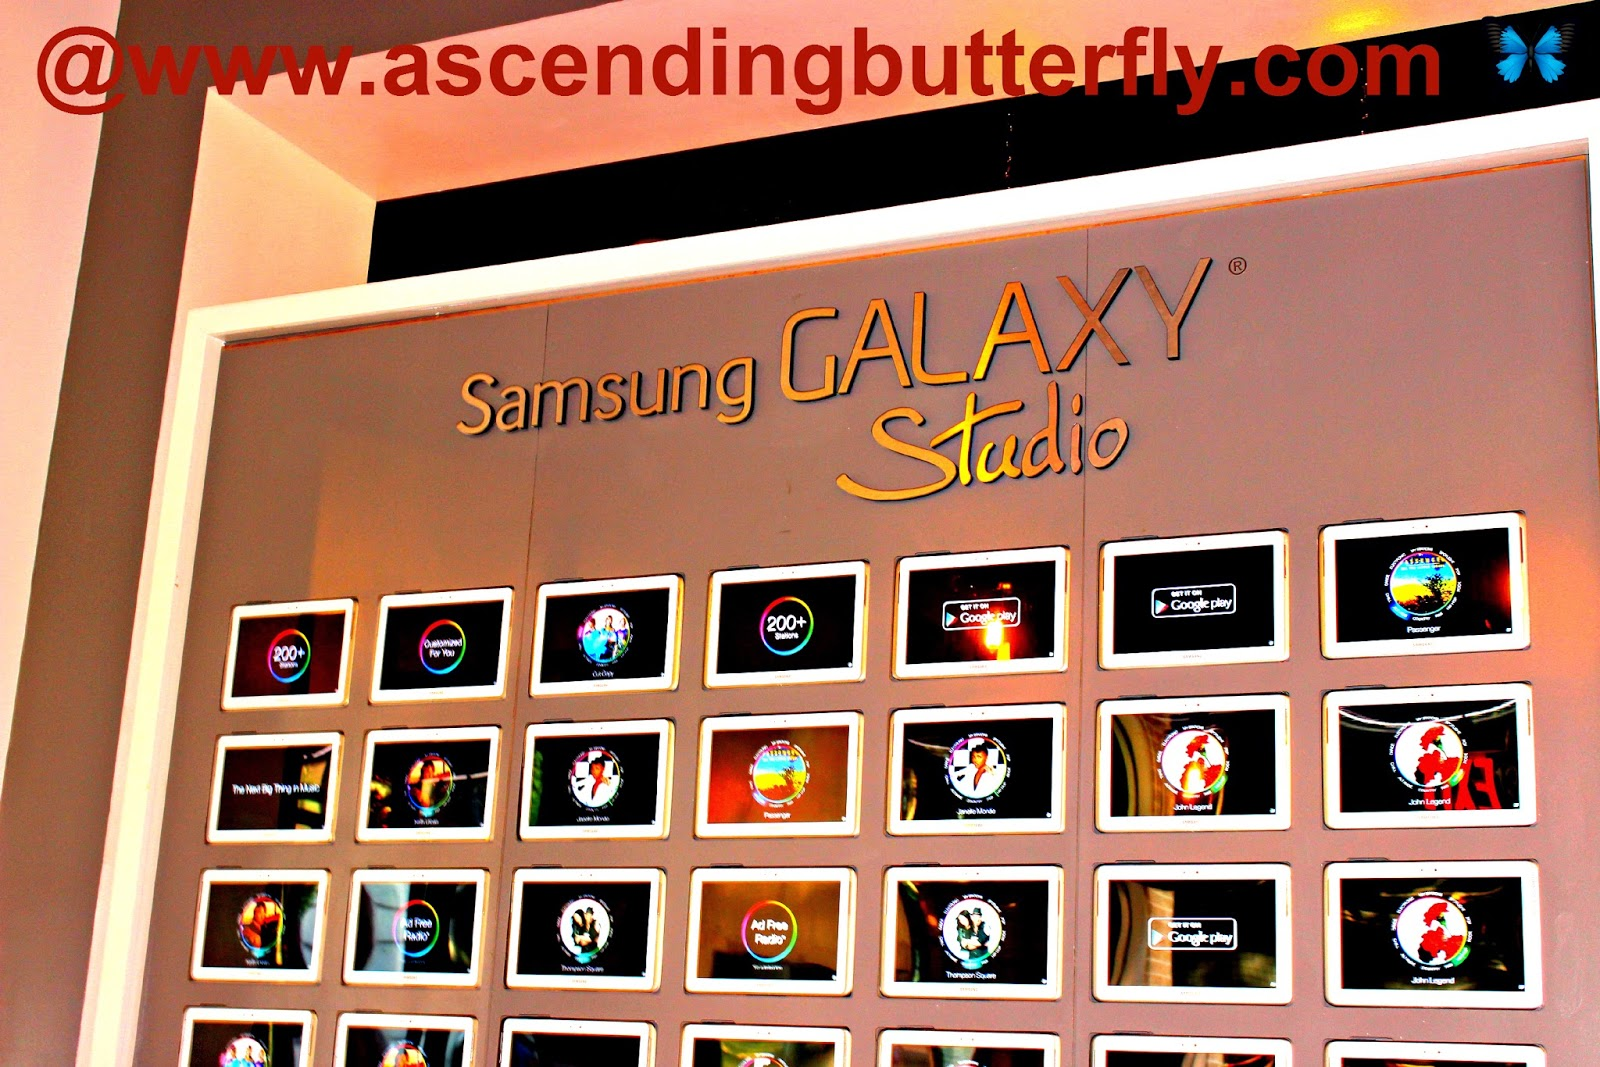 Samsung Galaxy Studio SoHo New York City